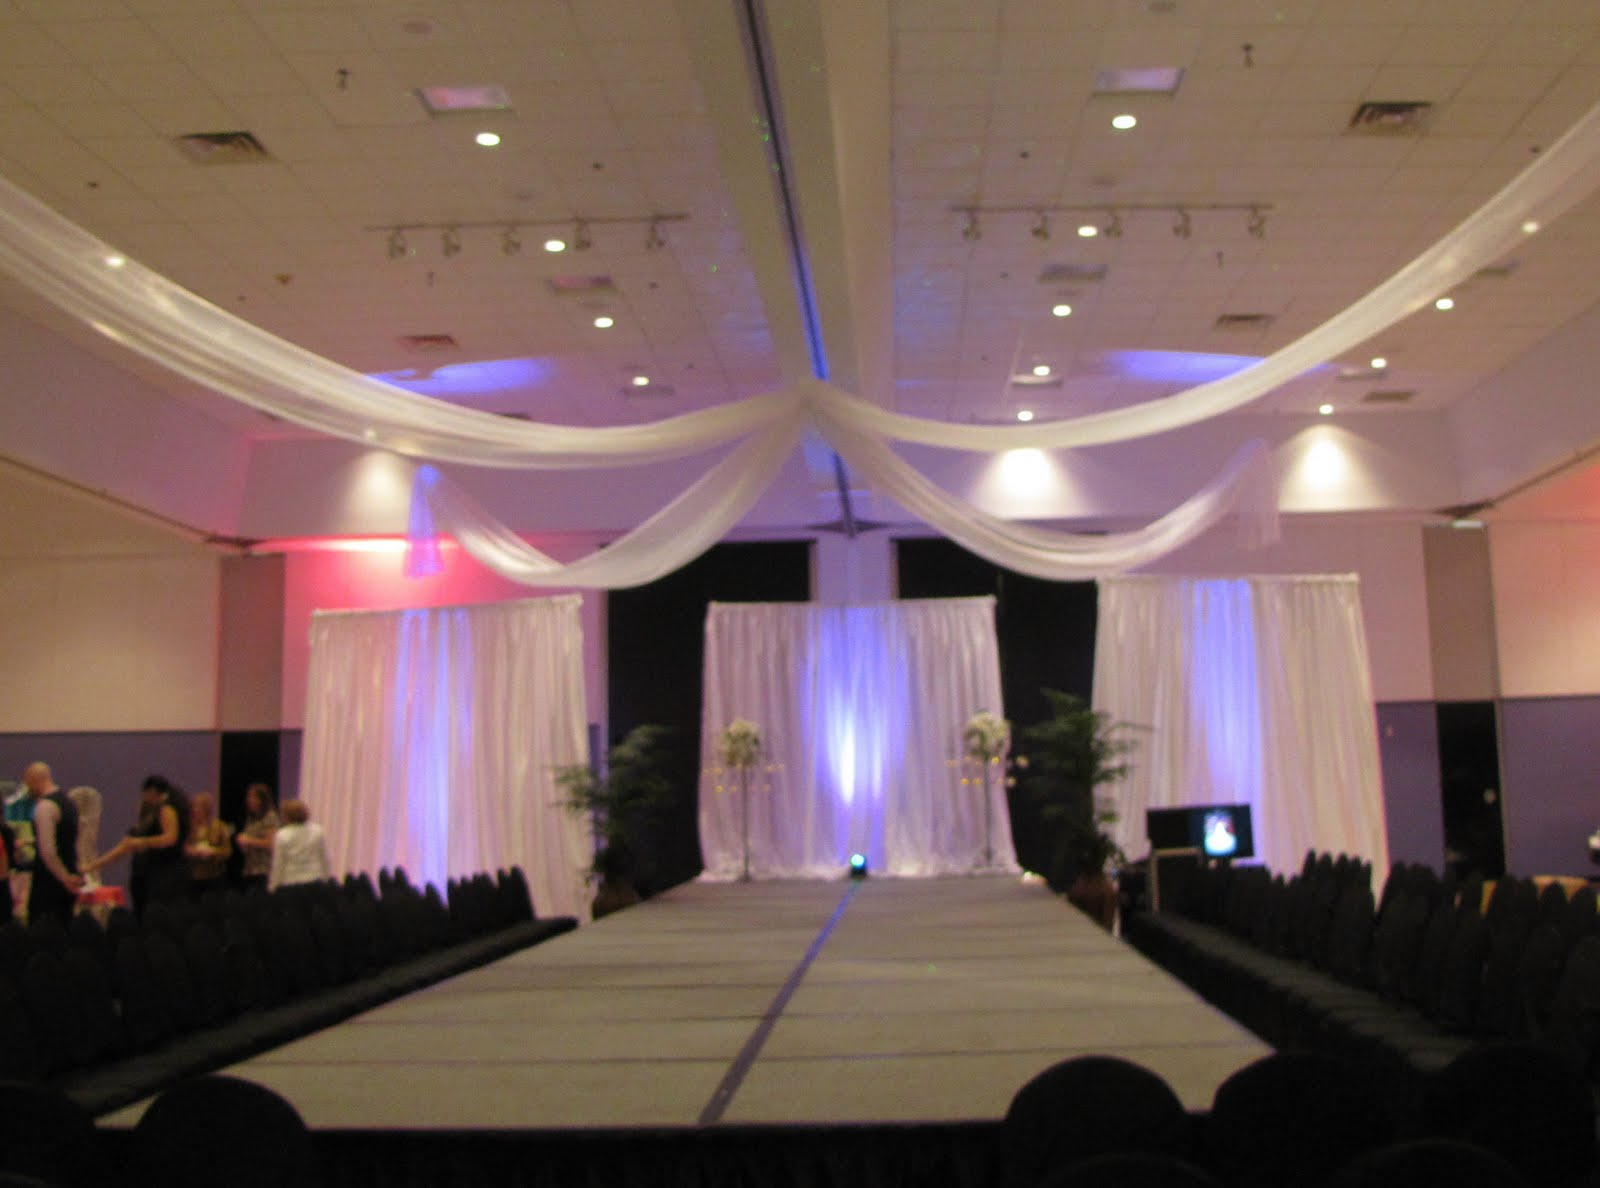 Party people event decorating company polk bridal exhibit for Decor company